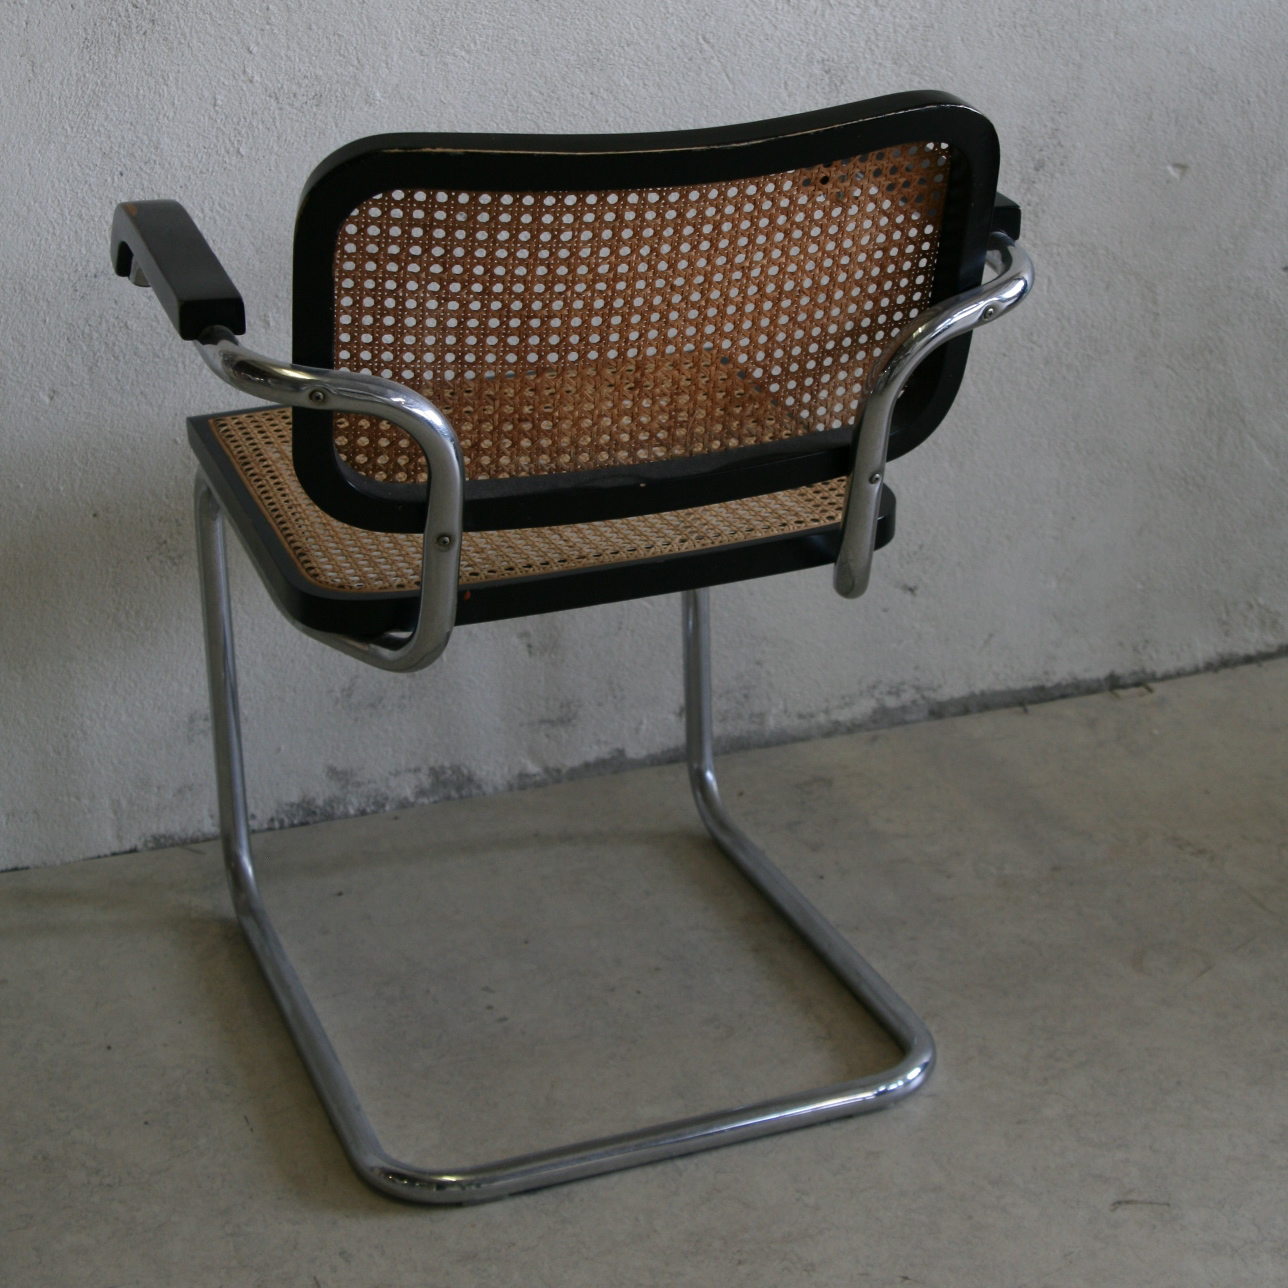 marcel breuer cesca chair with armrests double moon by tasteful objects toinc